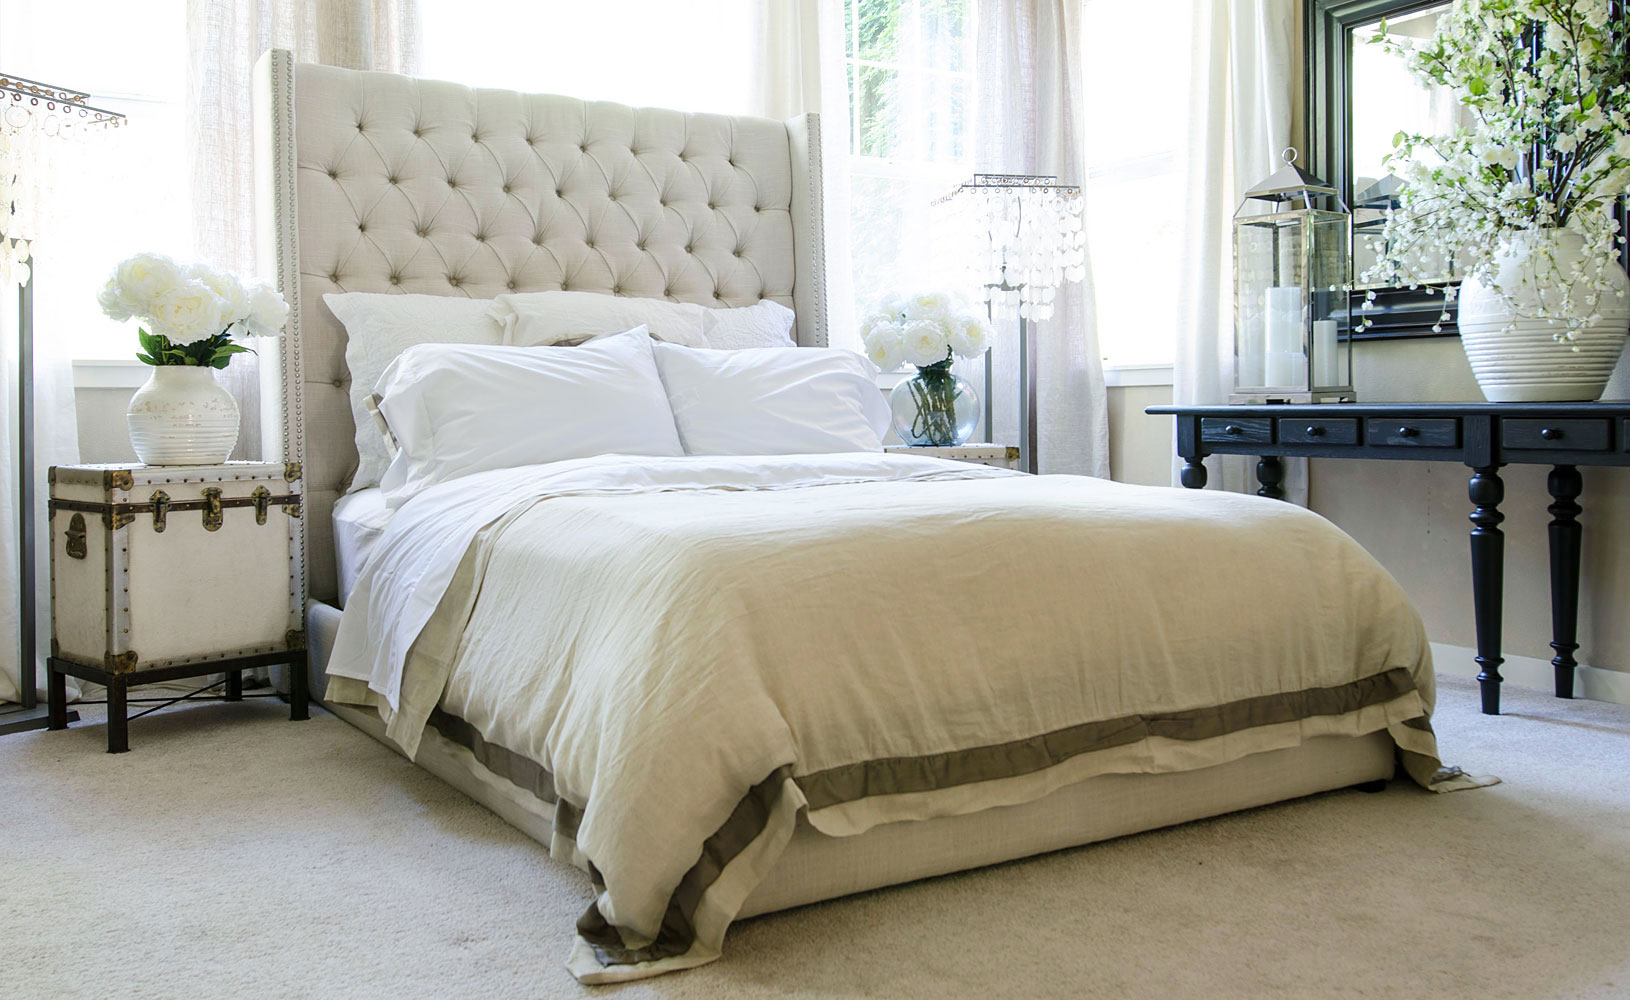 Fuller Tall Quot Ready To Ship Quot Fabric Upholstered Tufted